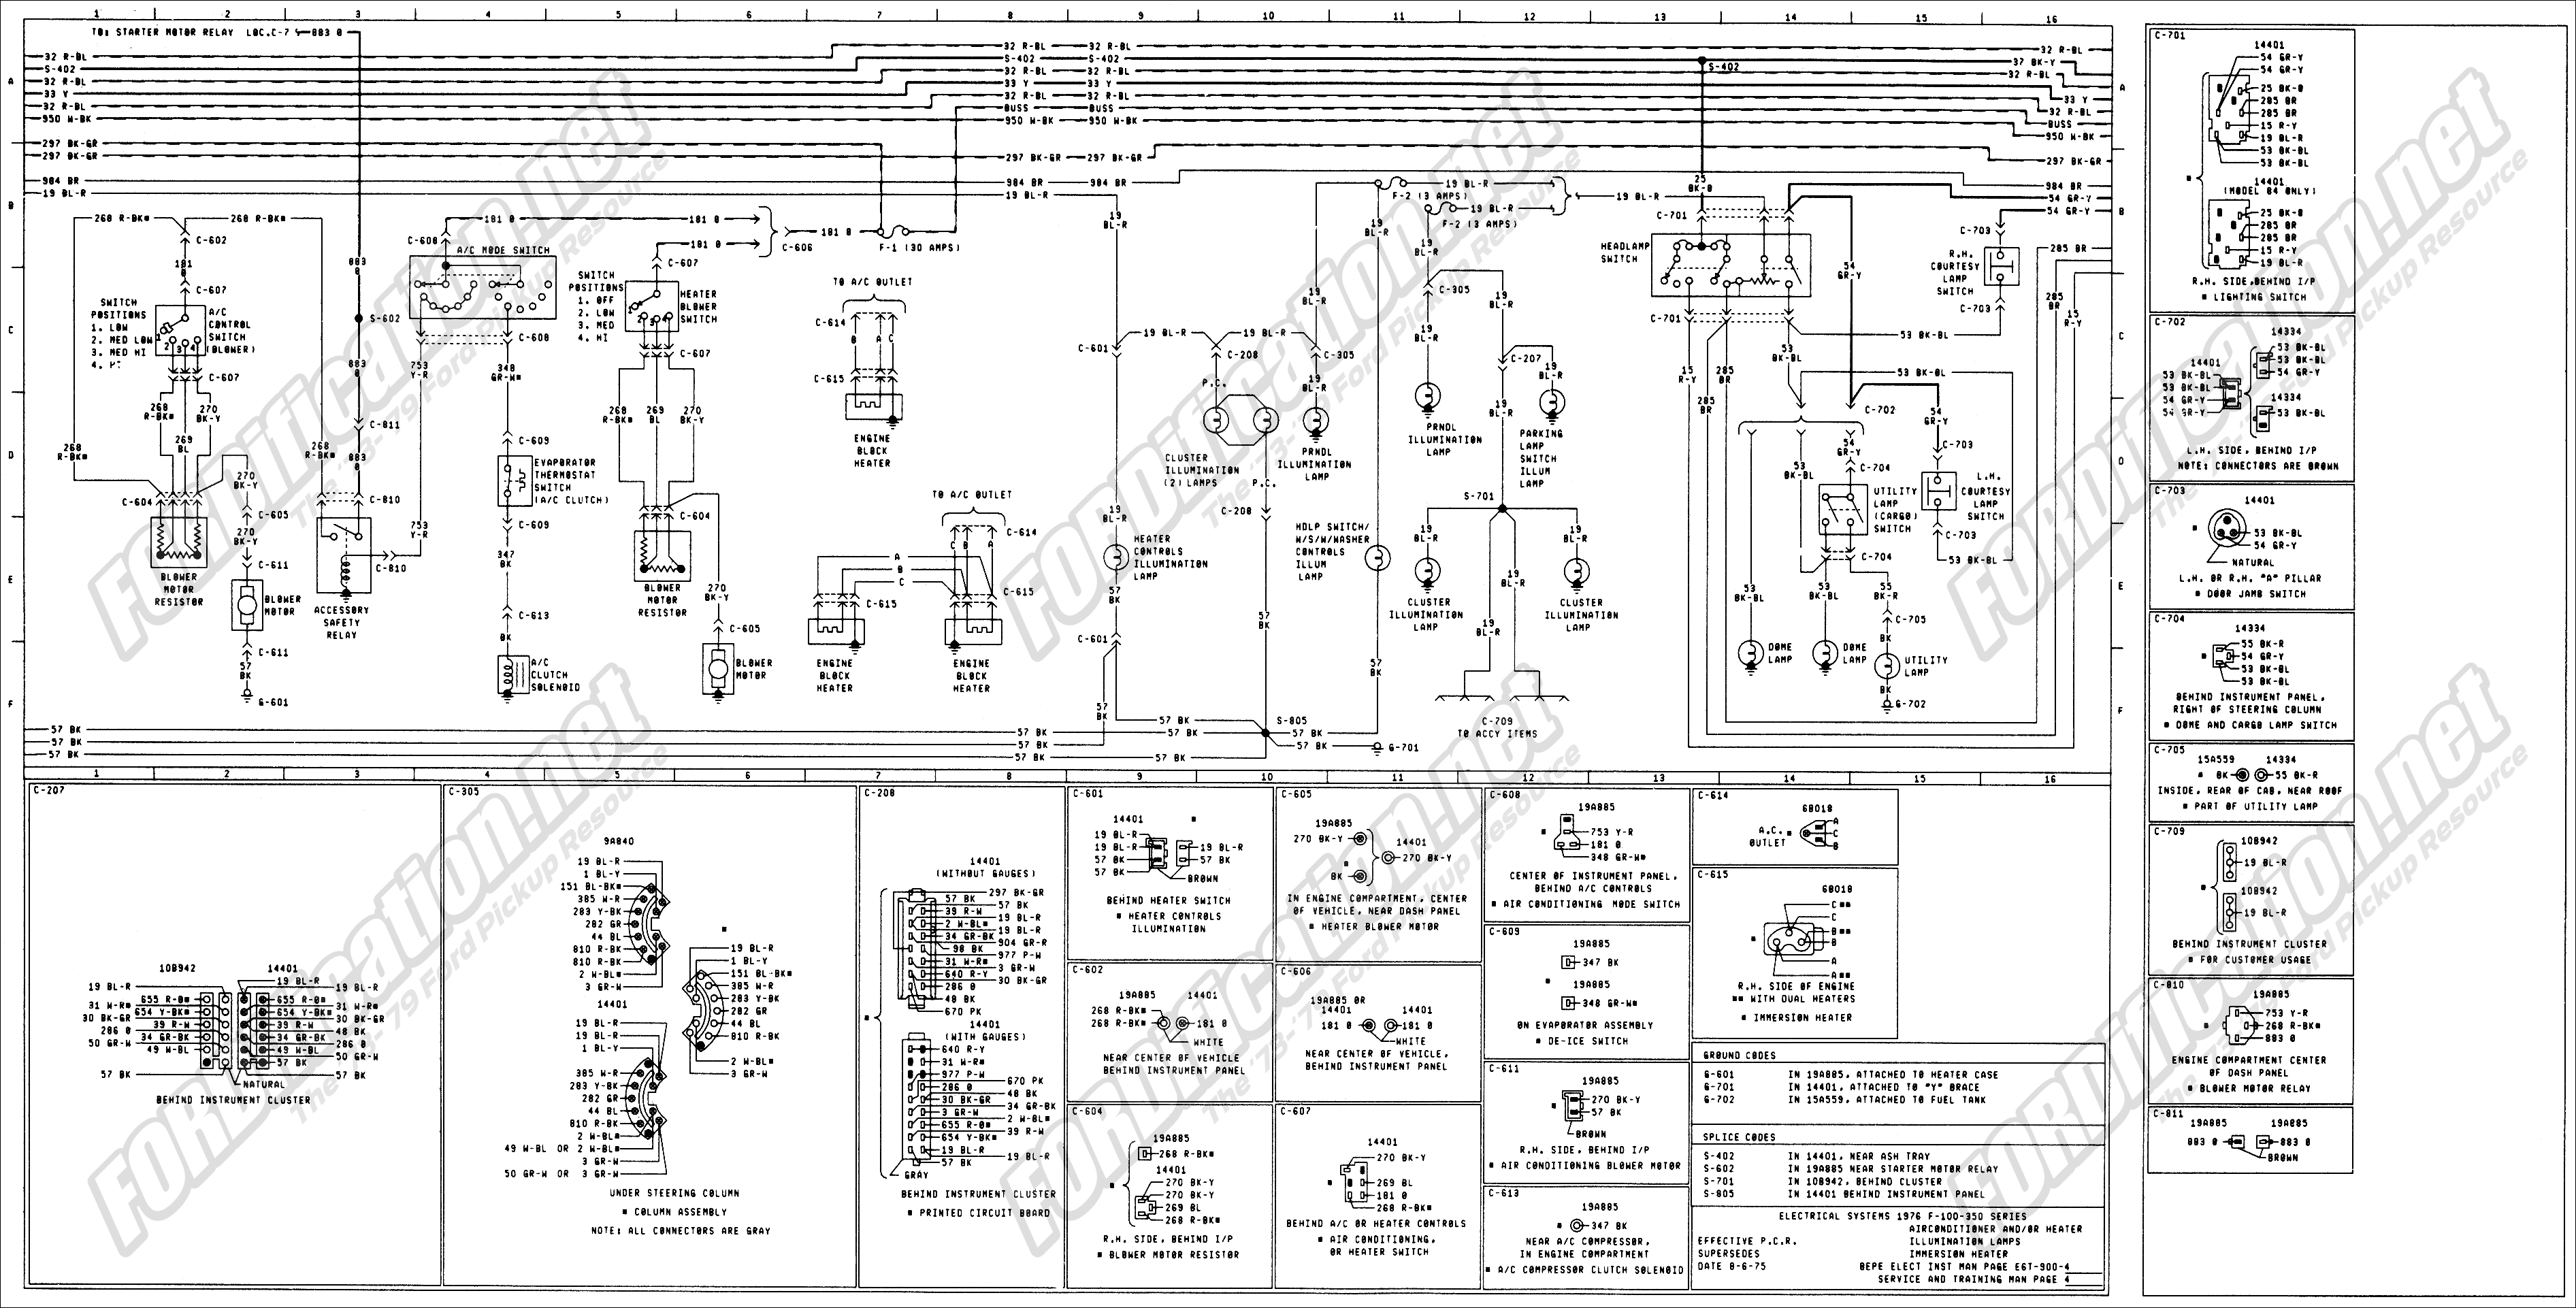 wiring_76master_4of9 1973 1979 ford truck wiring diagrams & schematics fordification net 1978 Ford F-150 Wiring Diagram at gsmx.co